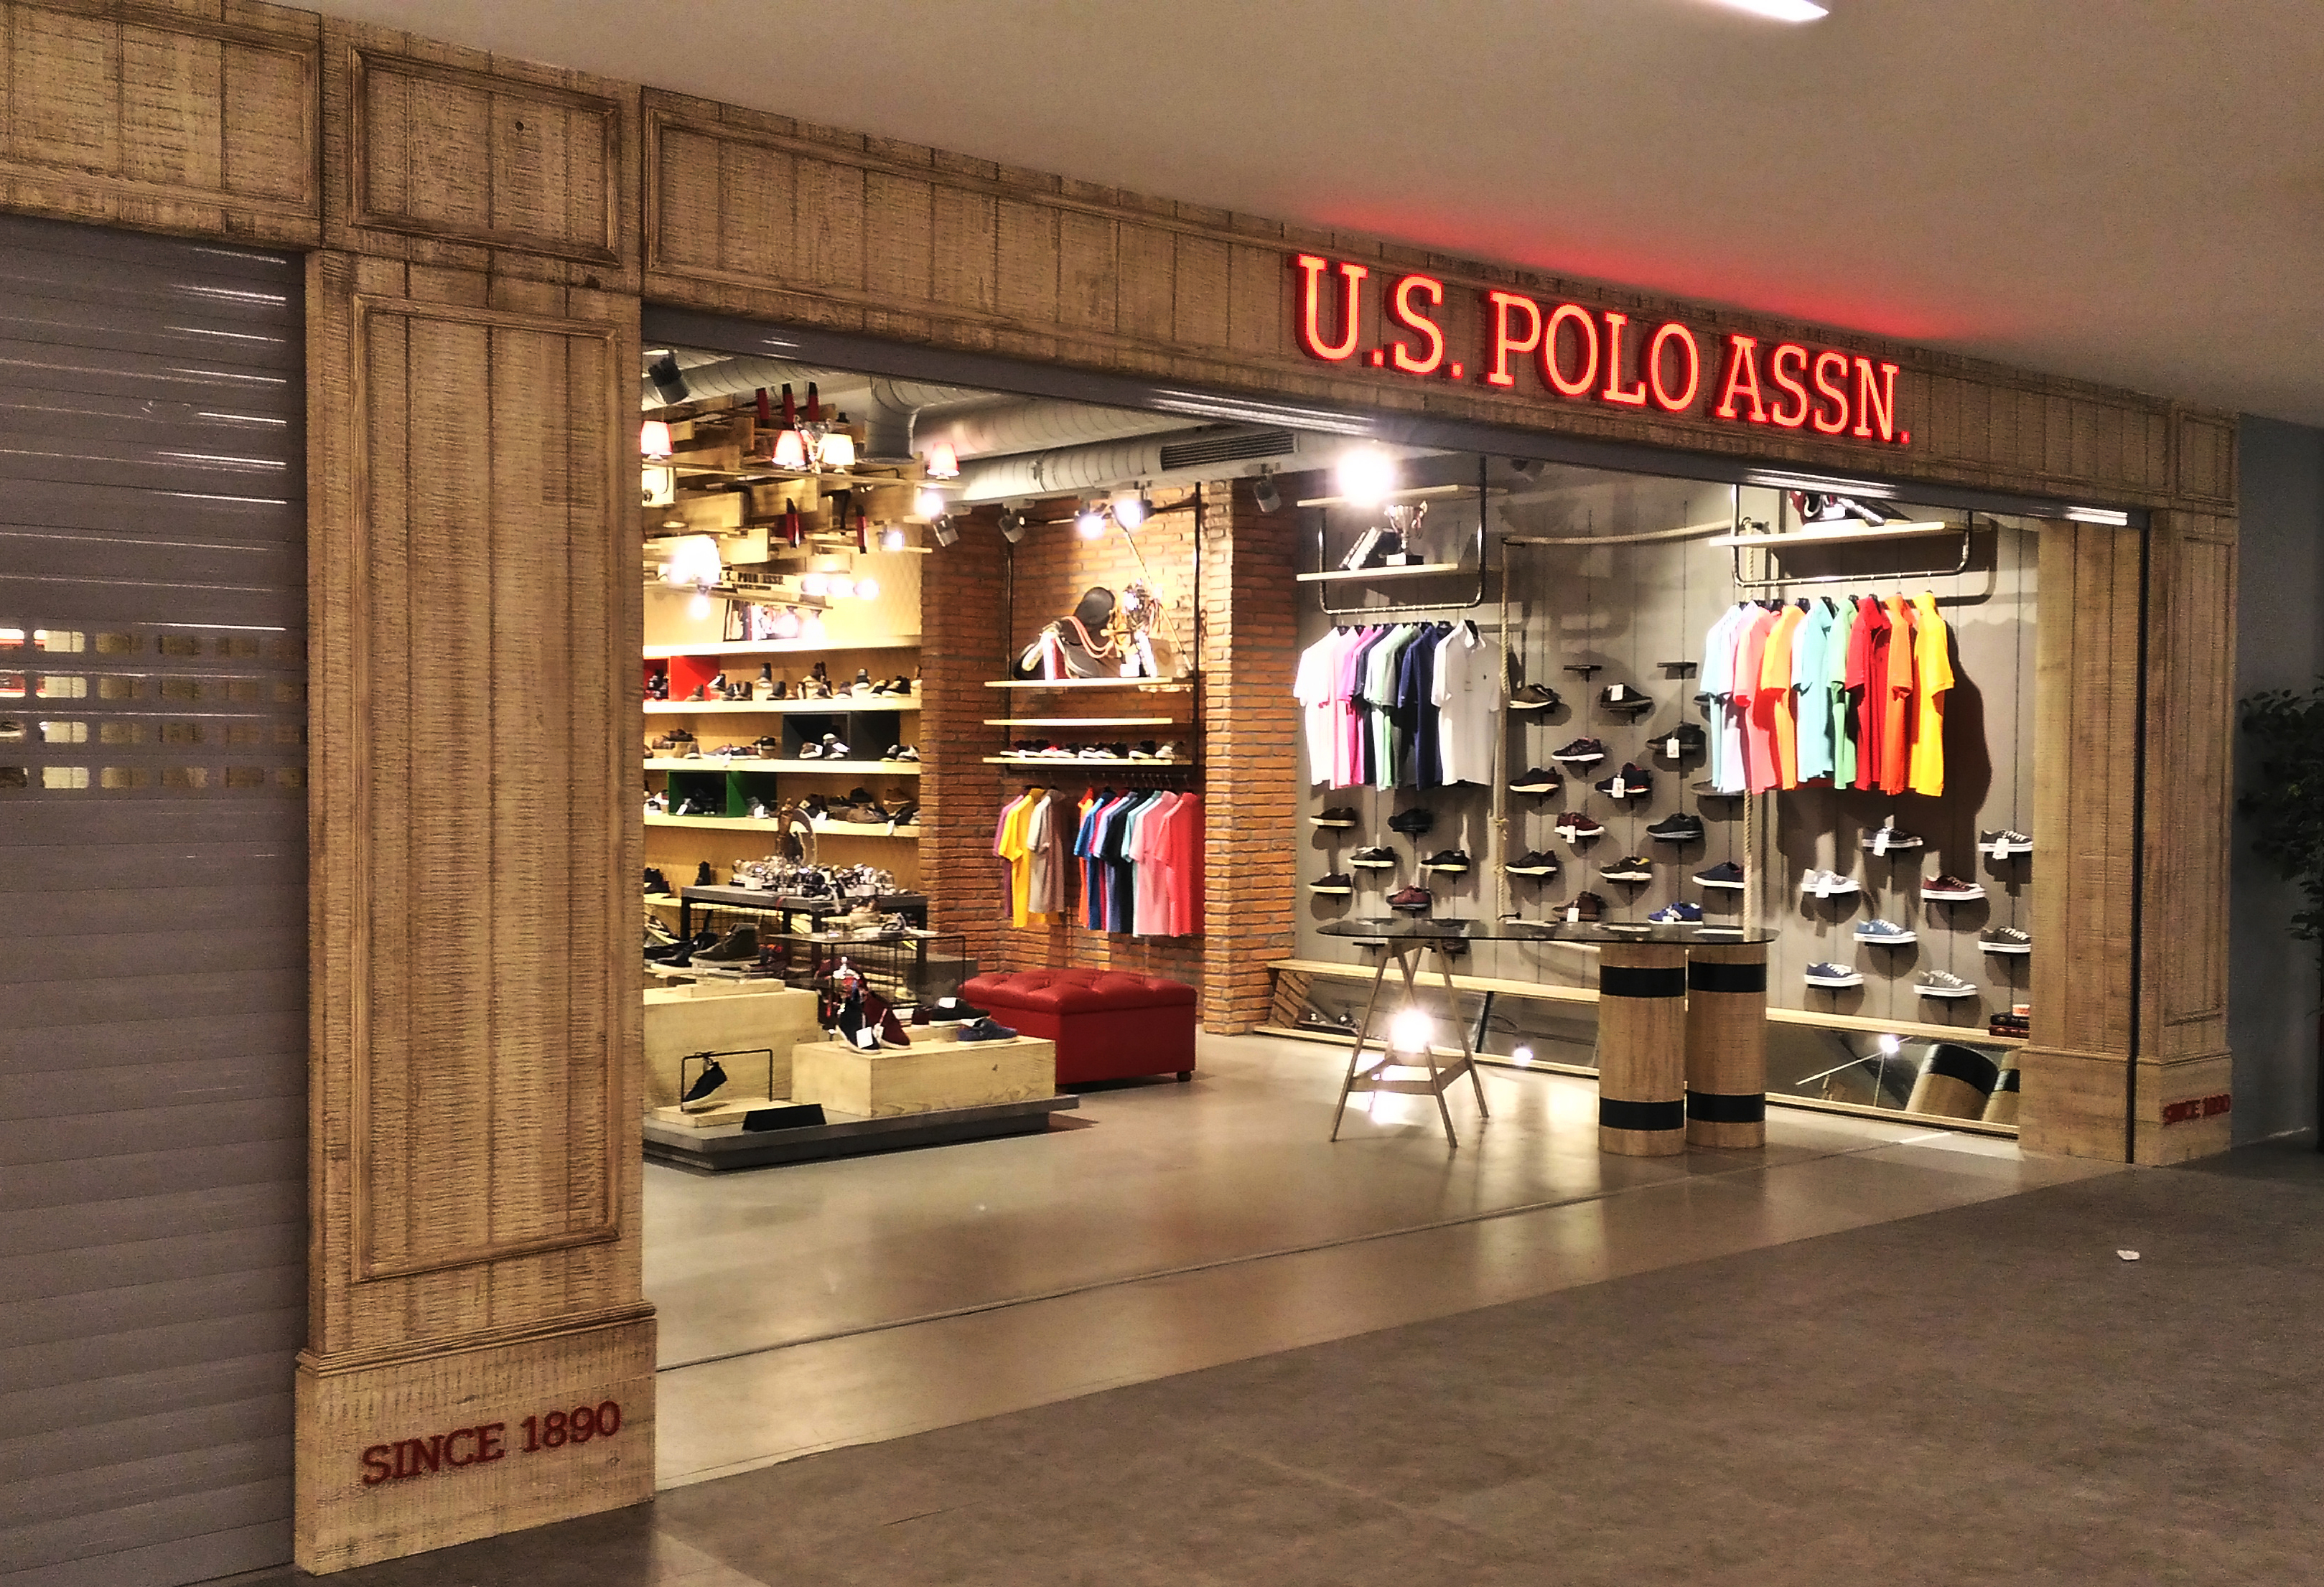 U.S. POLO ASSN. SHOES & ACCESORIES